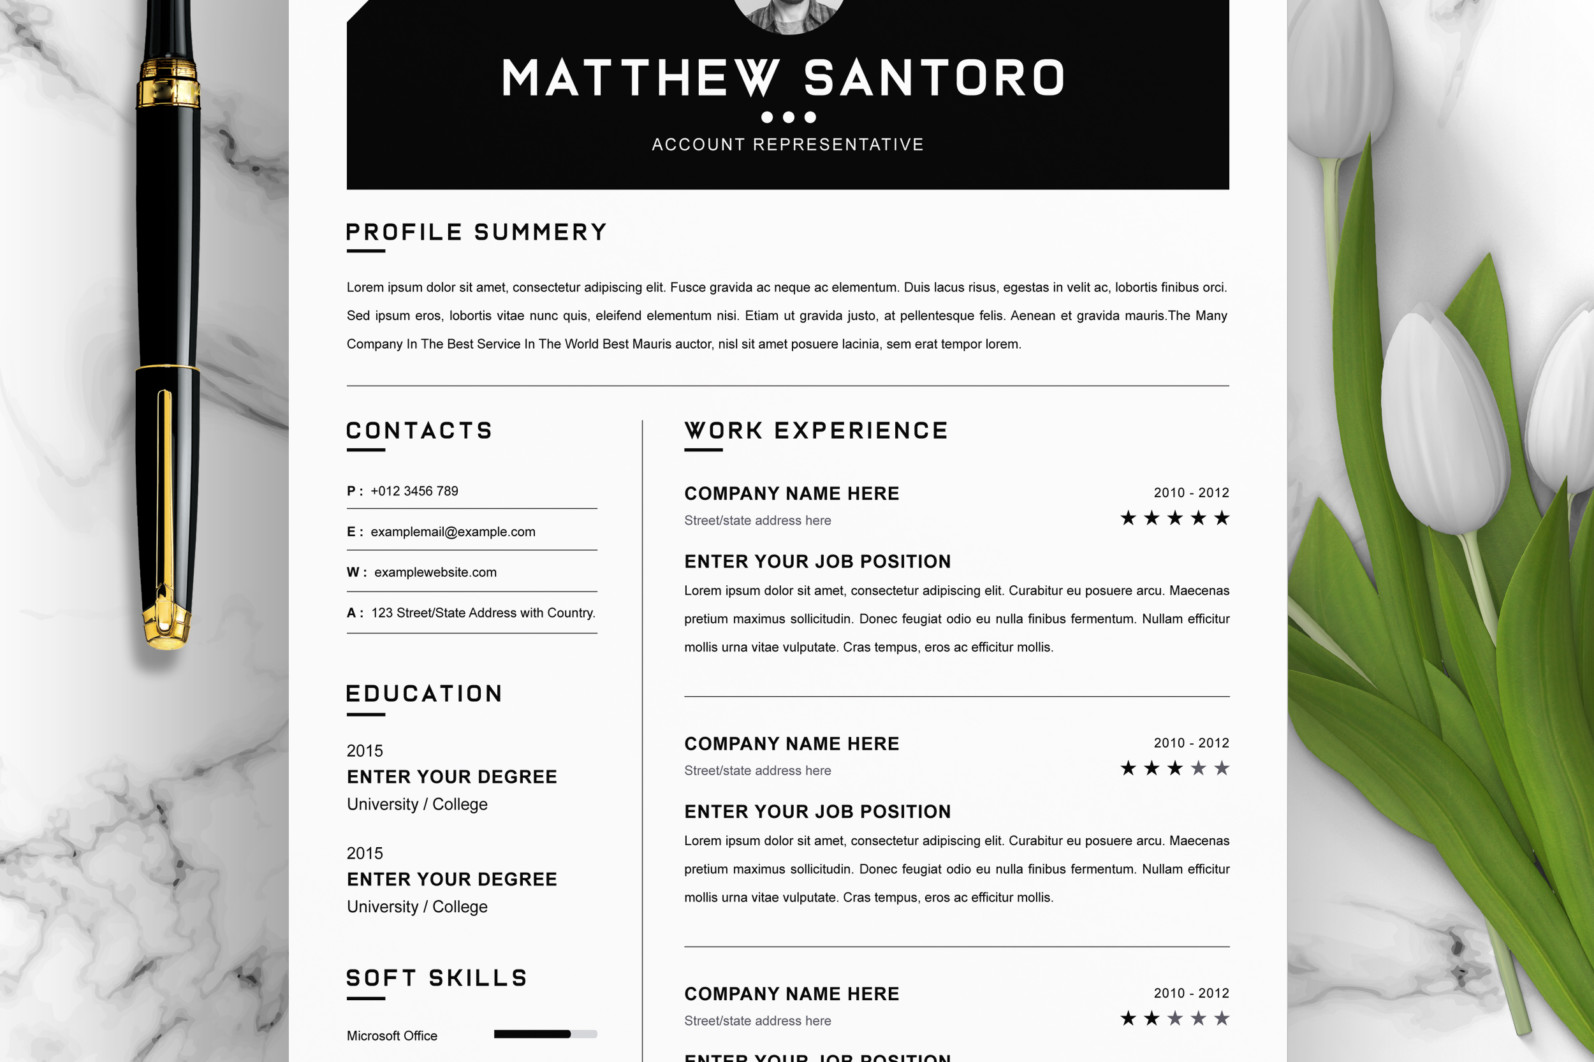 Simple Resume Design 2021 - 01 Clean Professional Creative and Modern Resume CV Curriculum Vitae Design Template MS Word Apple Pages PSD Free Download 10 -